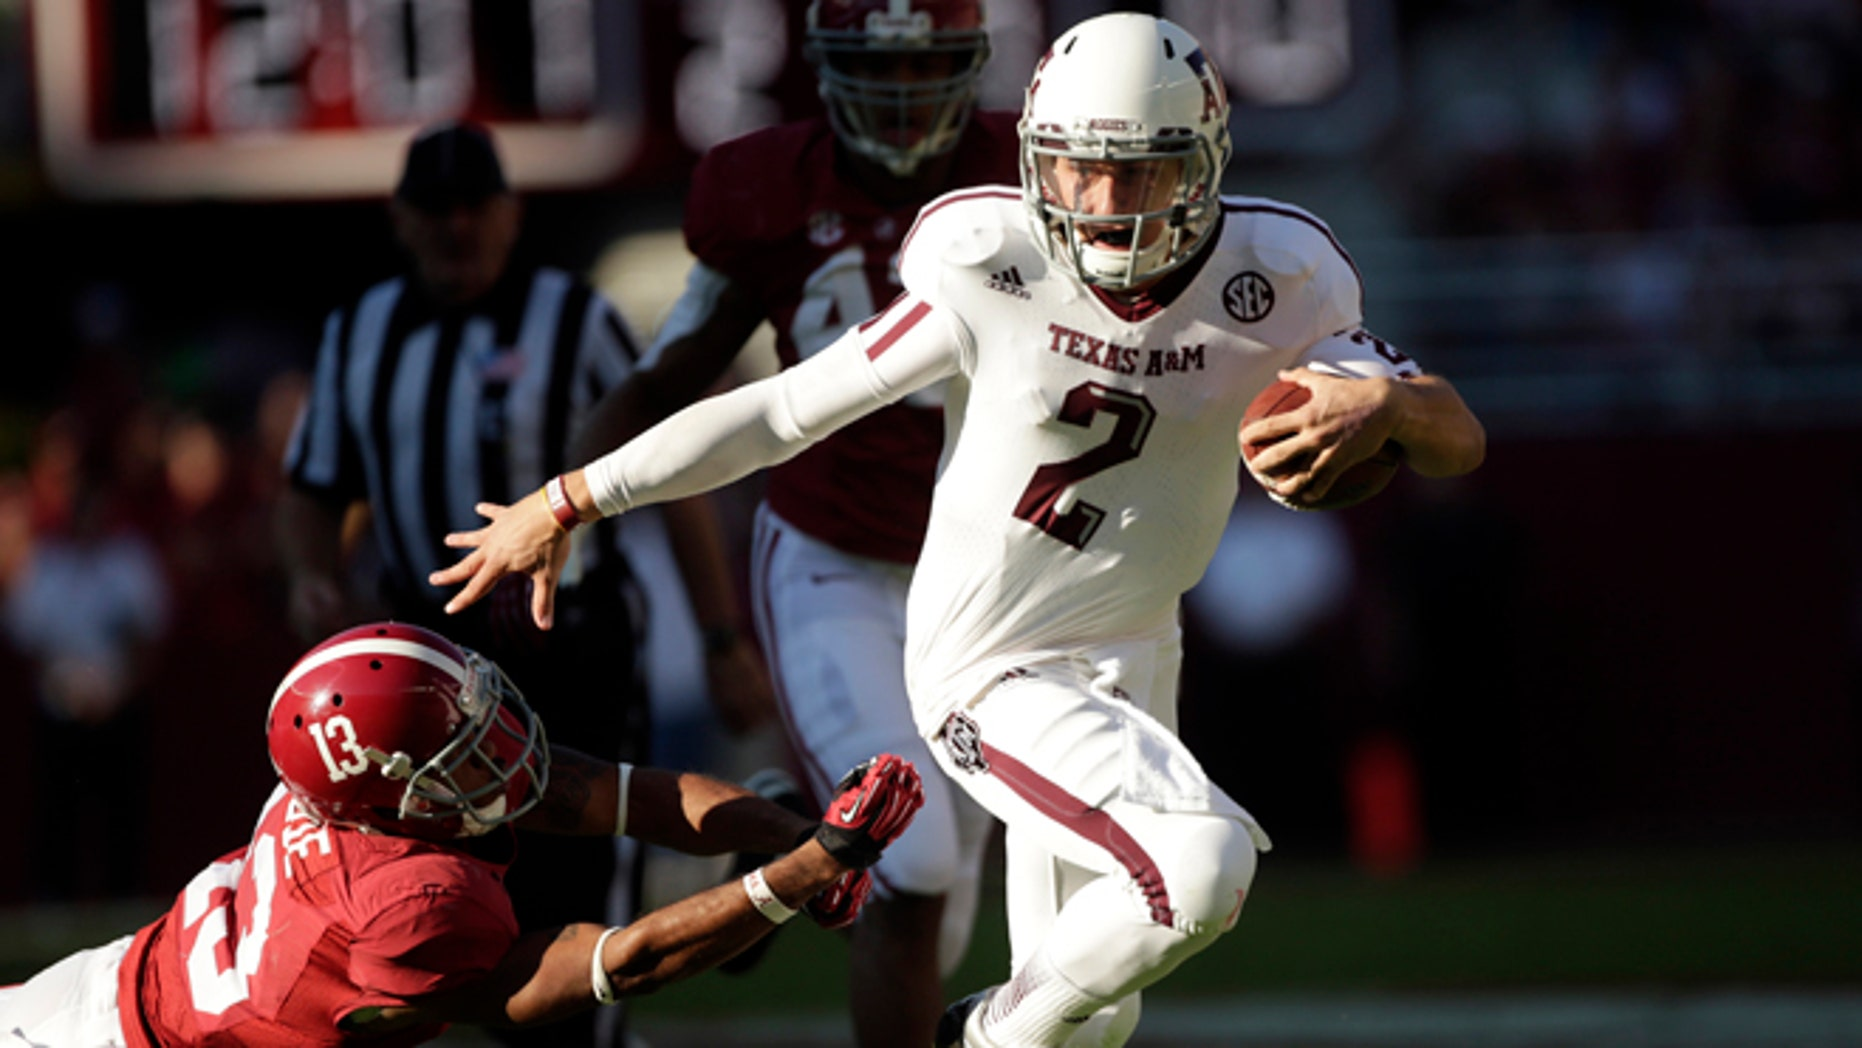 Nov. 10, 2012: Texas A&M quarterback Johnny Manziel (2) runs through the tackle of Alabama defensive back Deion Belue (13) during the first half of an NCAA college football game at Bryant-Denny Stadium in Tuscaloosa, Ala.